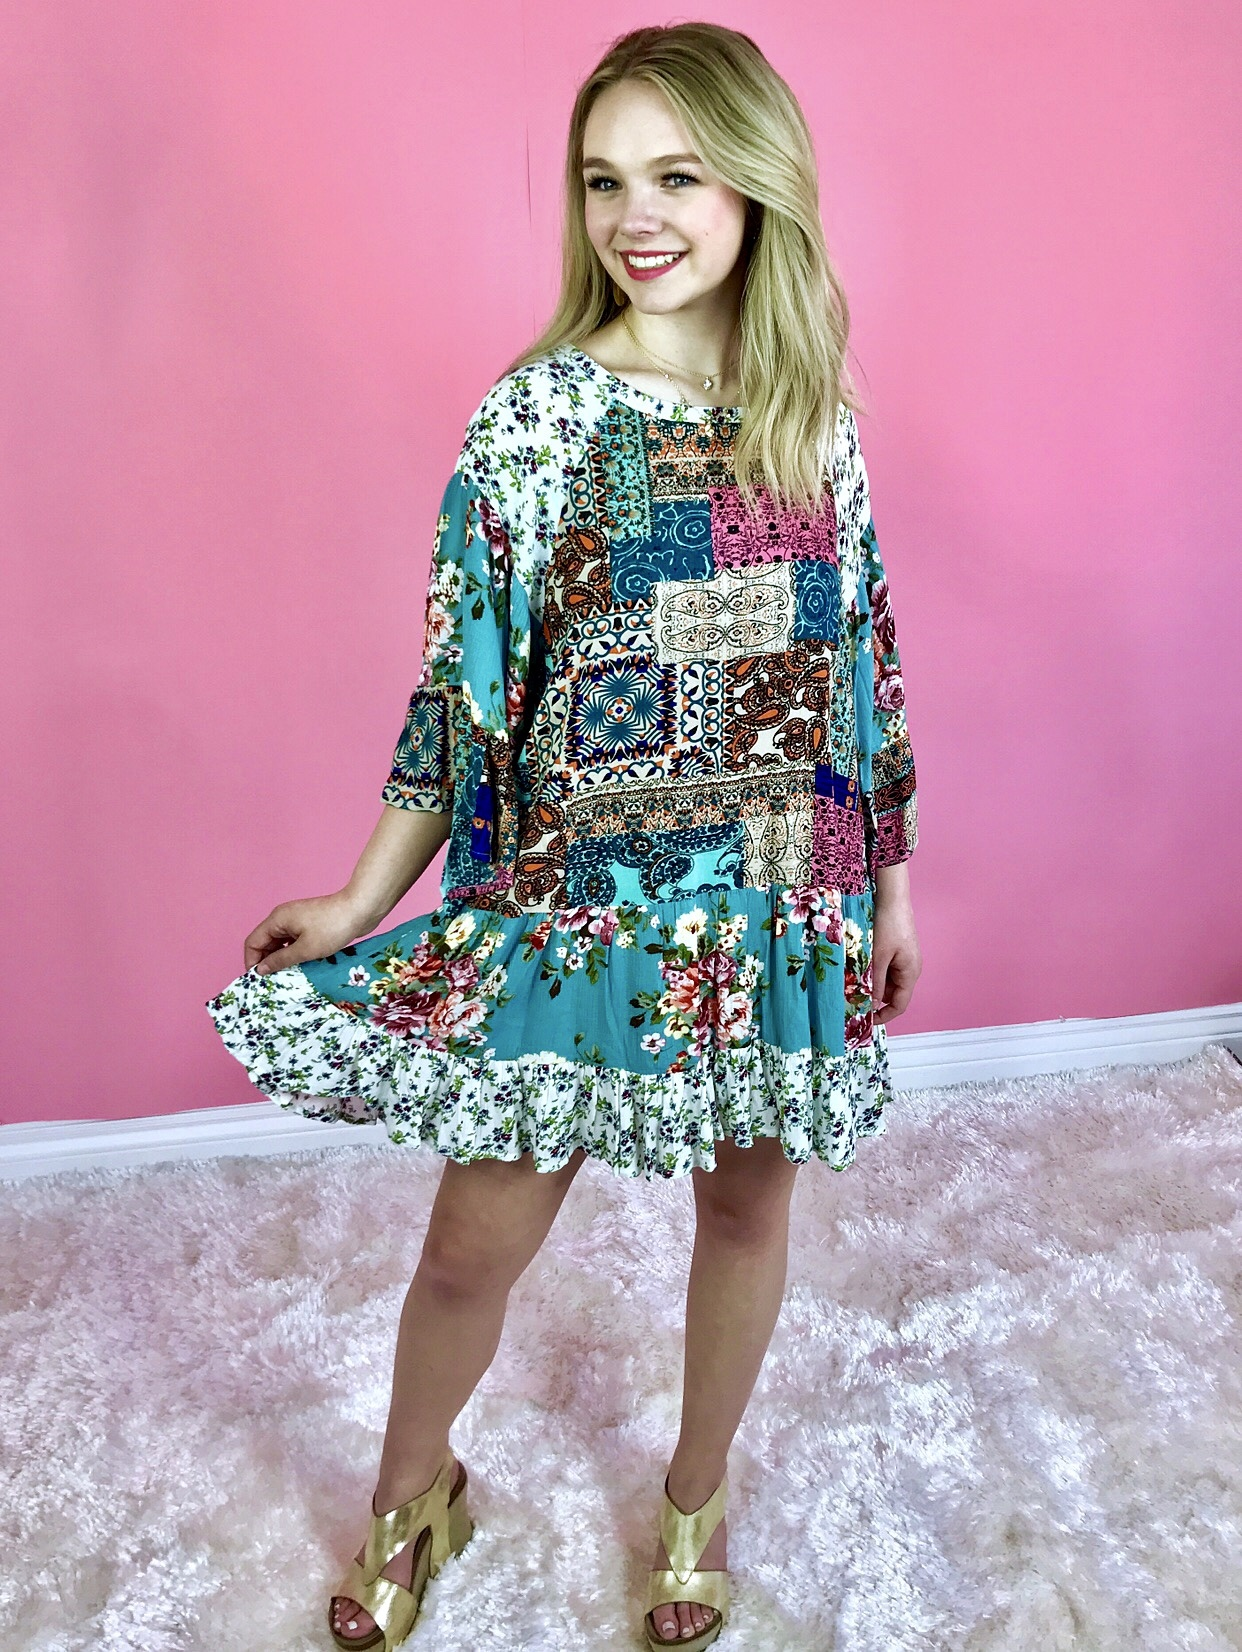 Teal Mixed Print Ruffle Tunic Dress